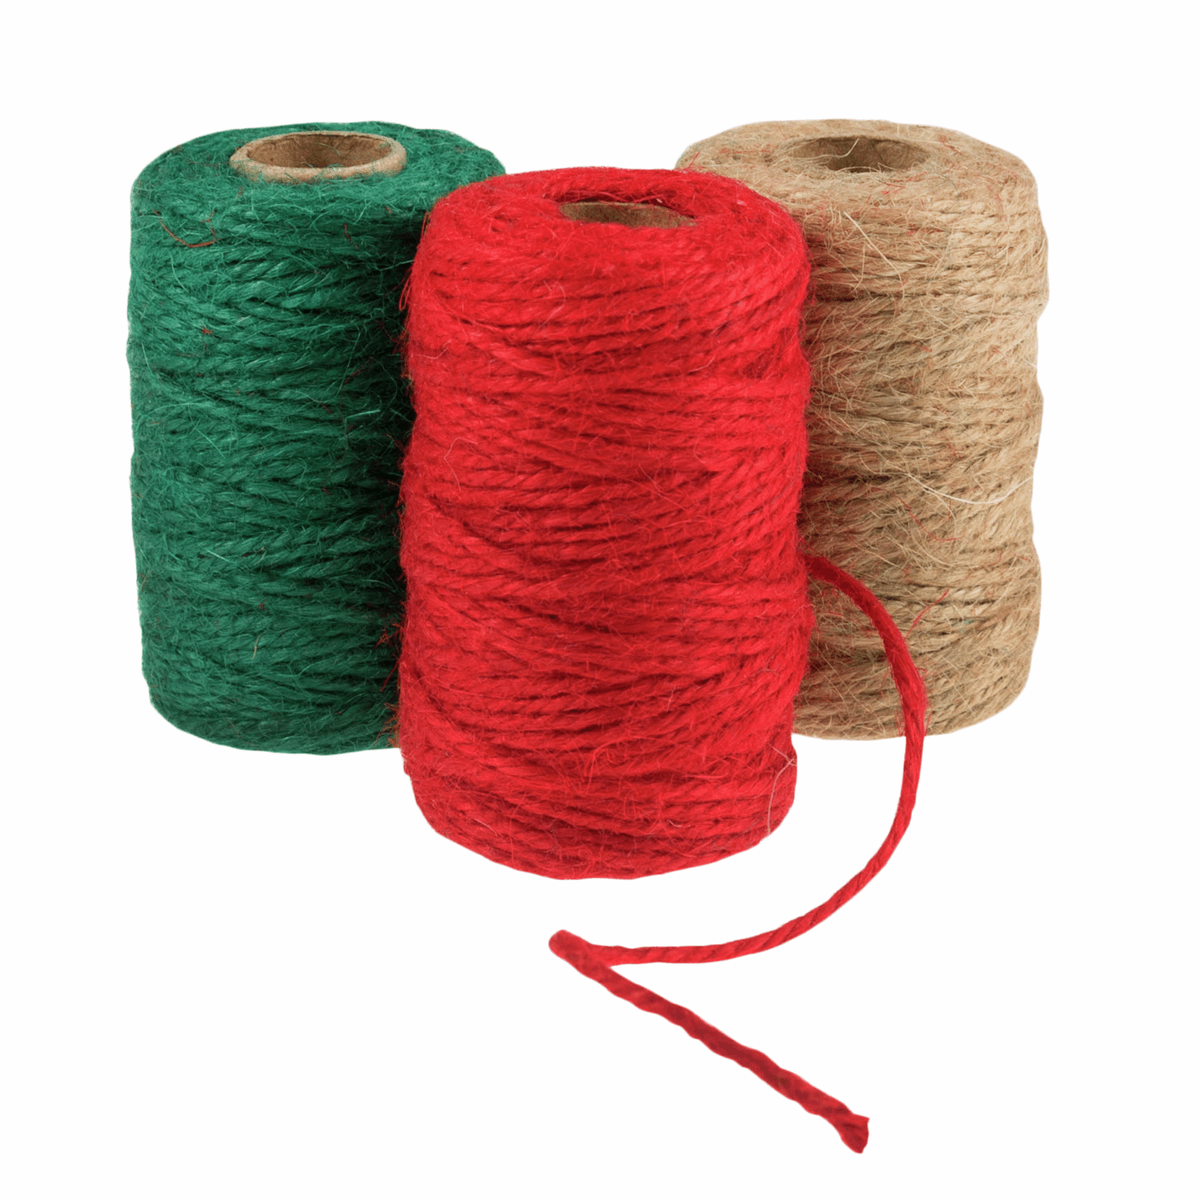 Picture of Jute Balls: 30m x 2mm: 3 Pack